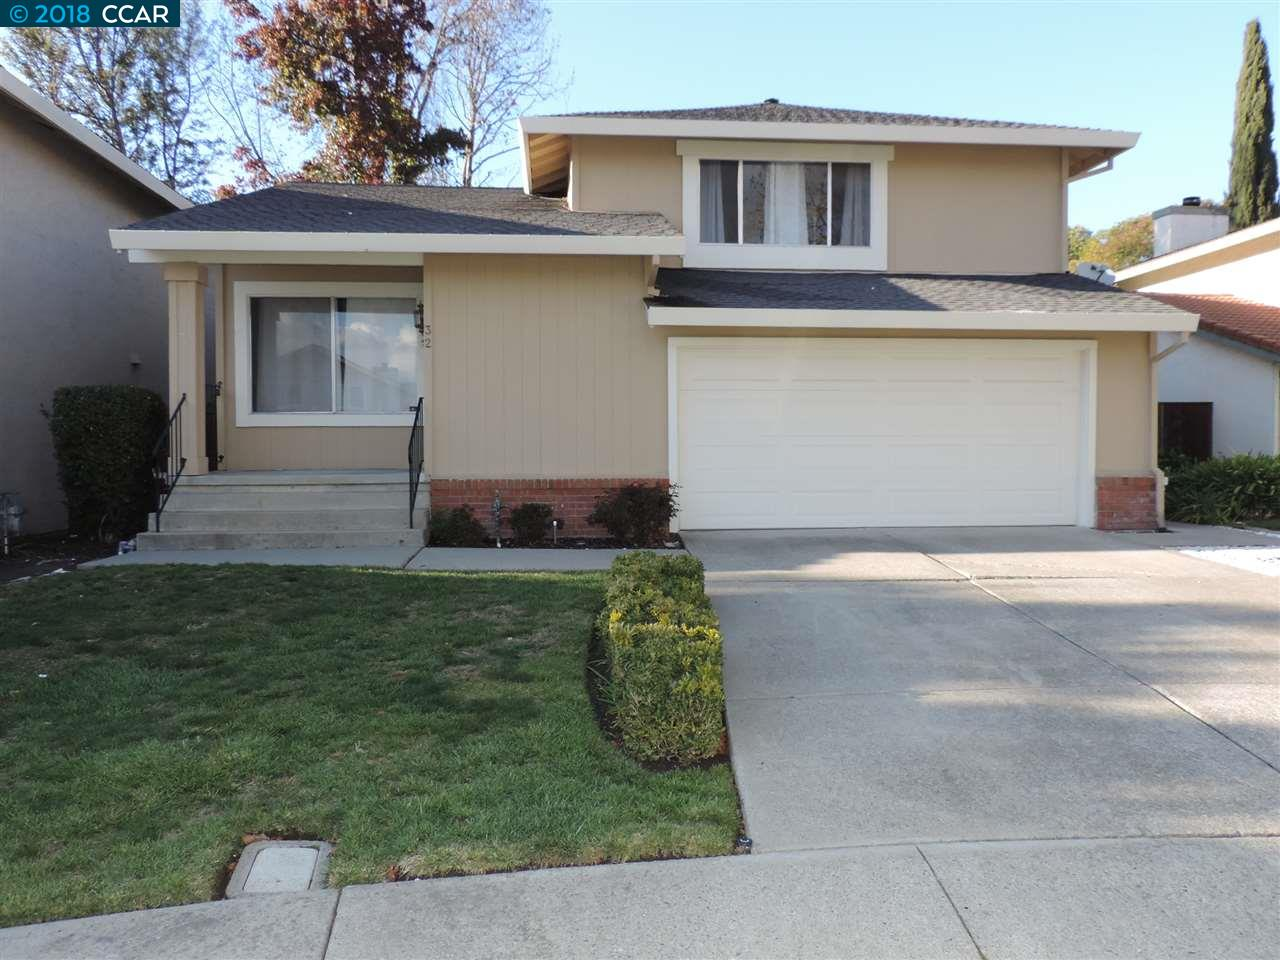 Single Family Home for Rent at 32 Palamos Court 32 Palamos Court San Ramon, California 94583 United States